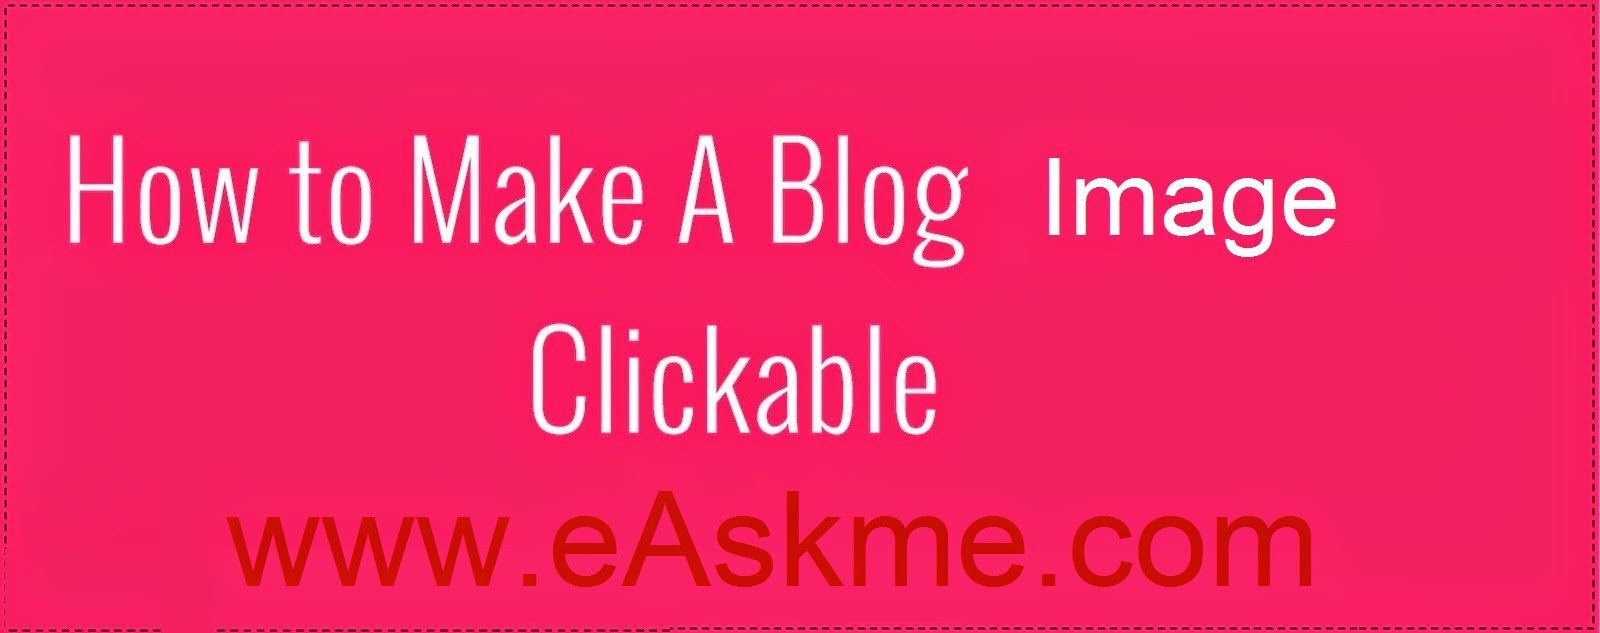 How to Make an Image Clickable on a Blogger Blog : eAskme